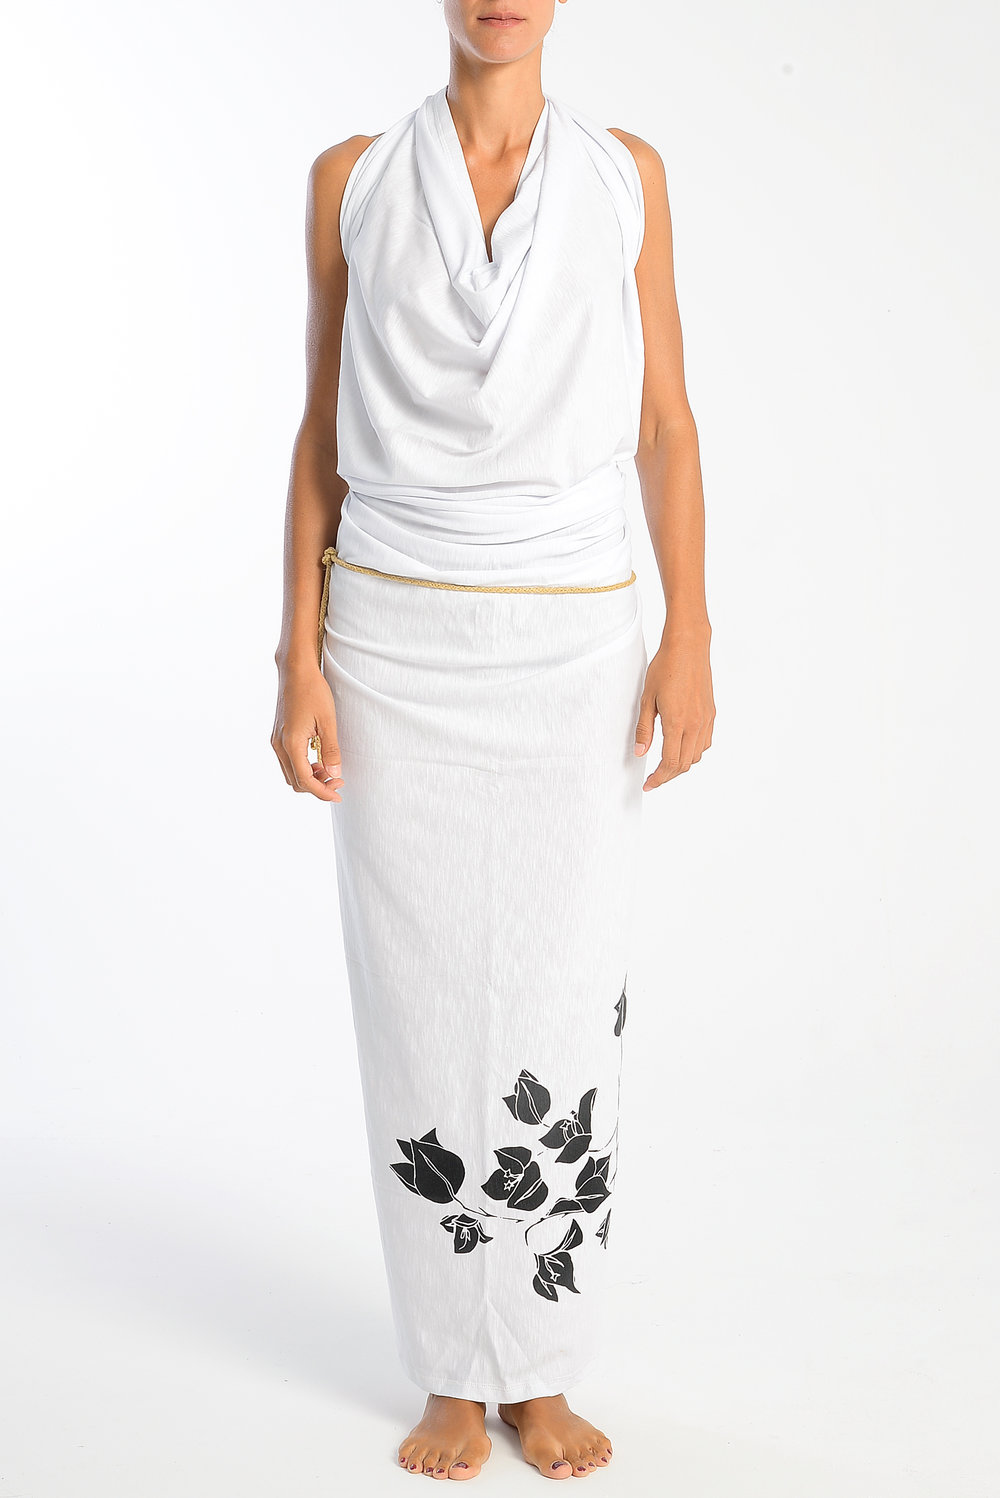 boukamvillea-print-on-white-cotton-pareo-wrap-long-dress.jpg